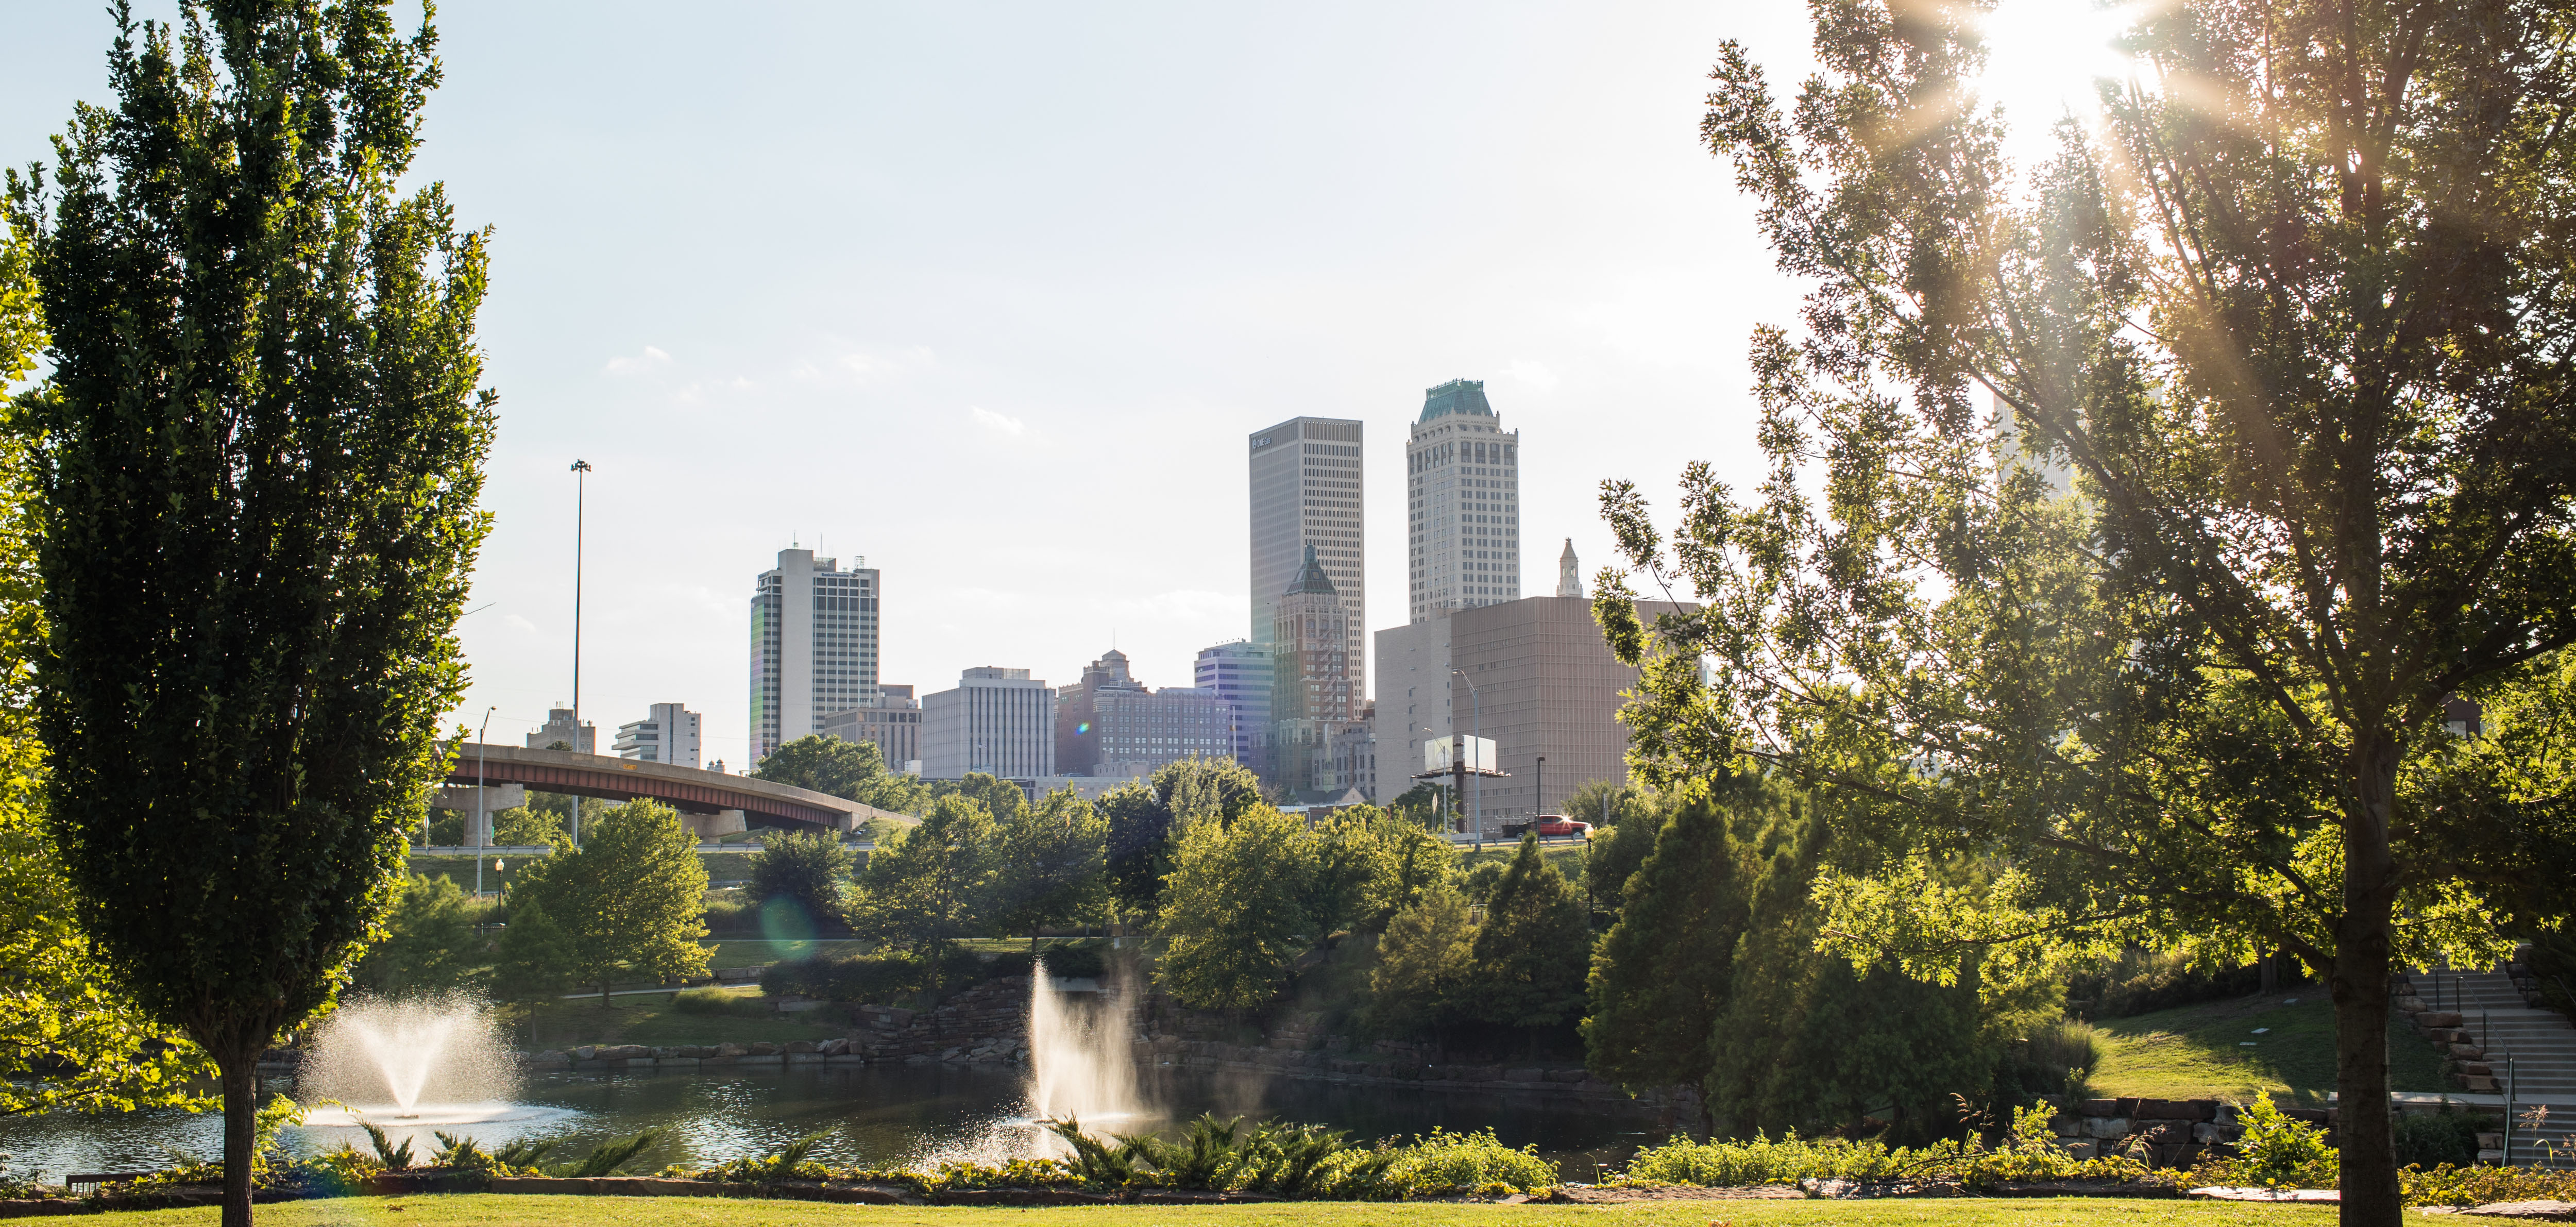 The downtown skyline seen from Tulsa Pearl District's Centennial Park.